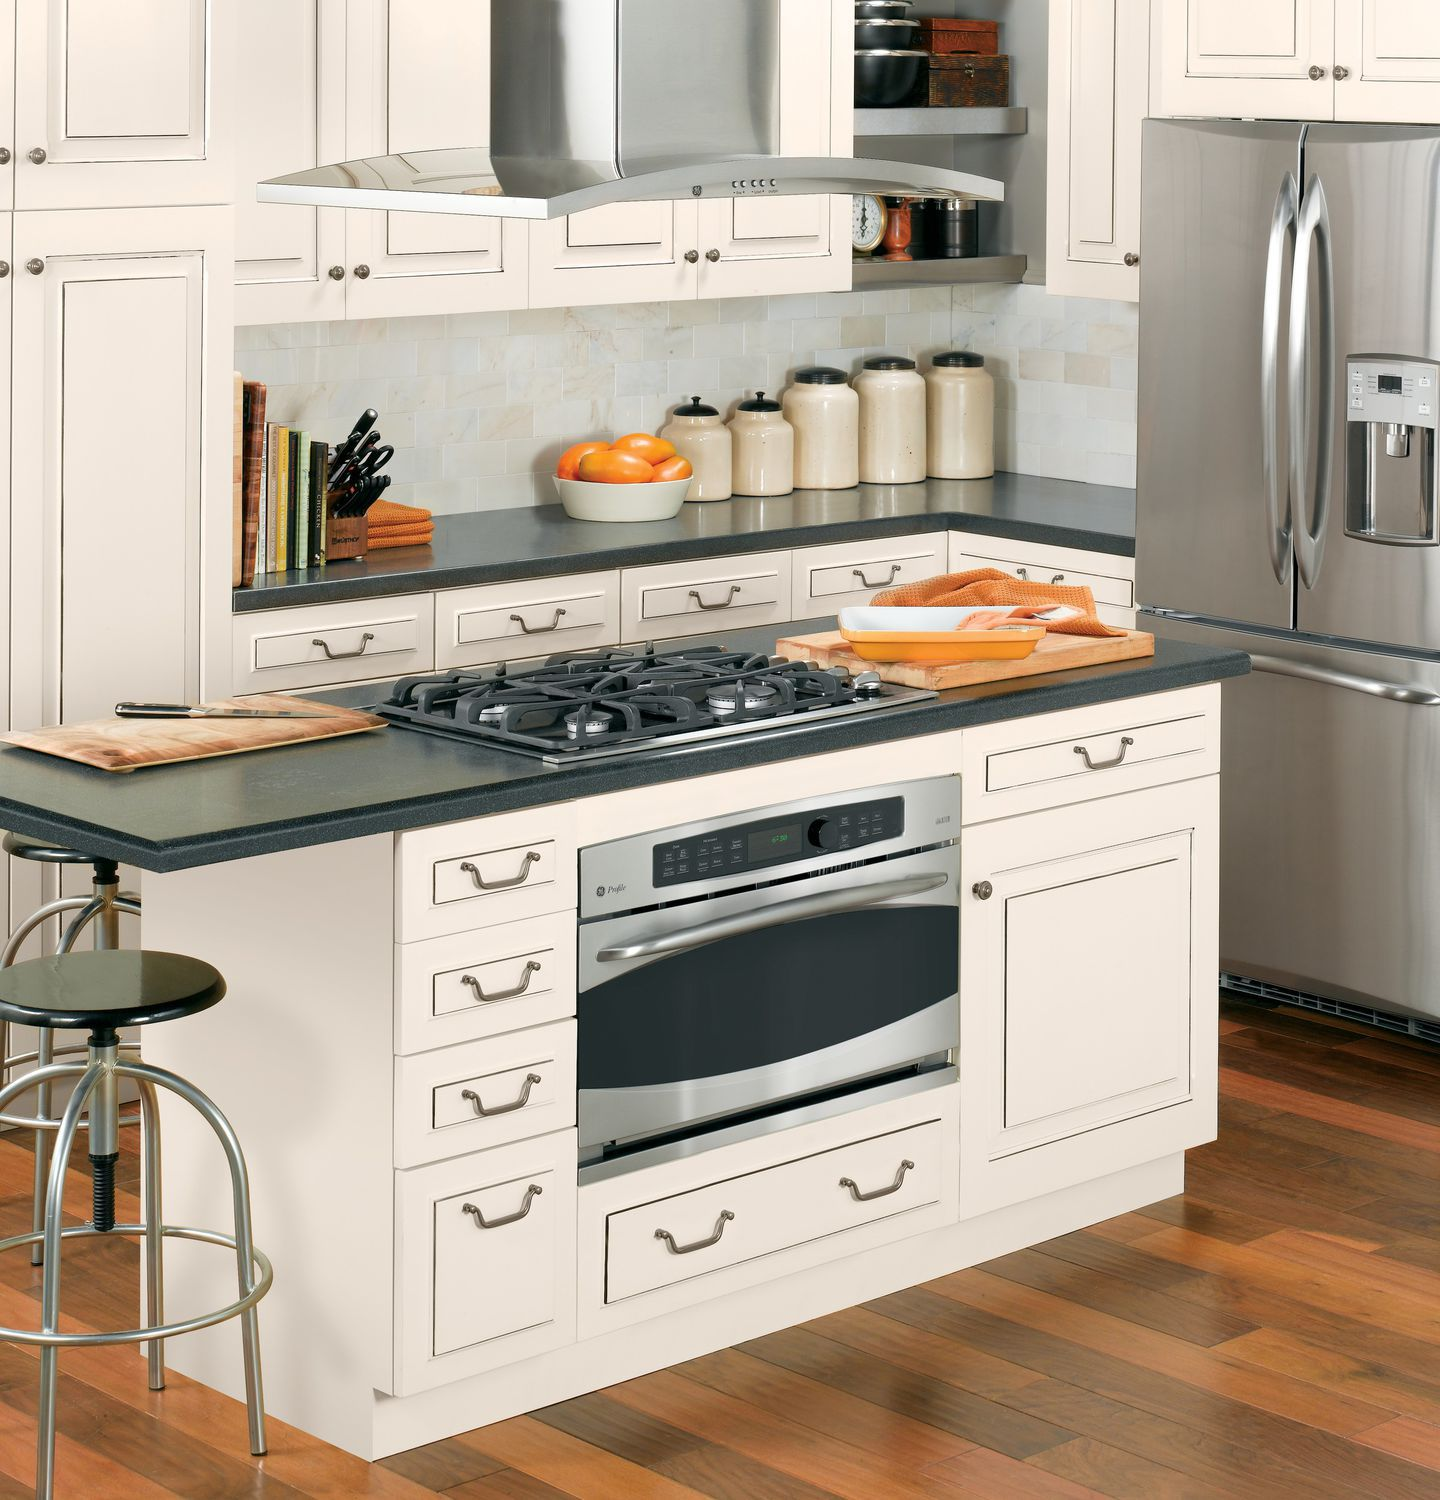 Kitchen Island With Range Island Range Hood With Built In Lighting Pv977nss General